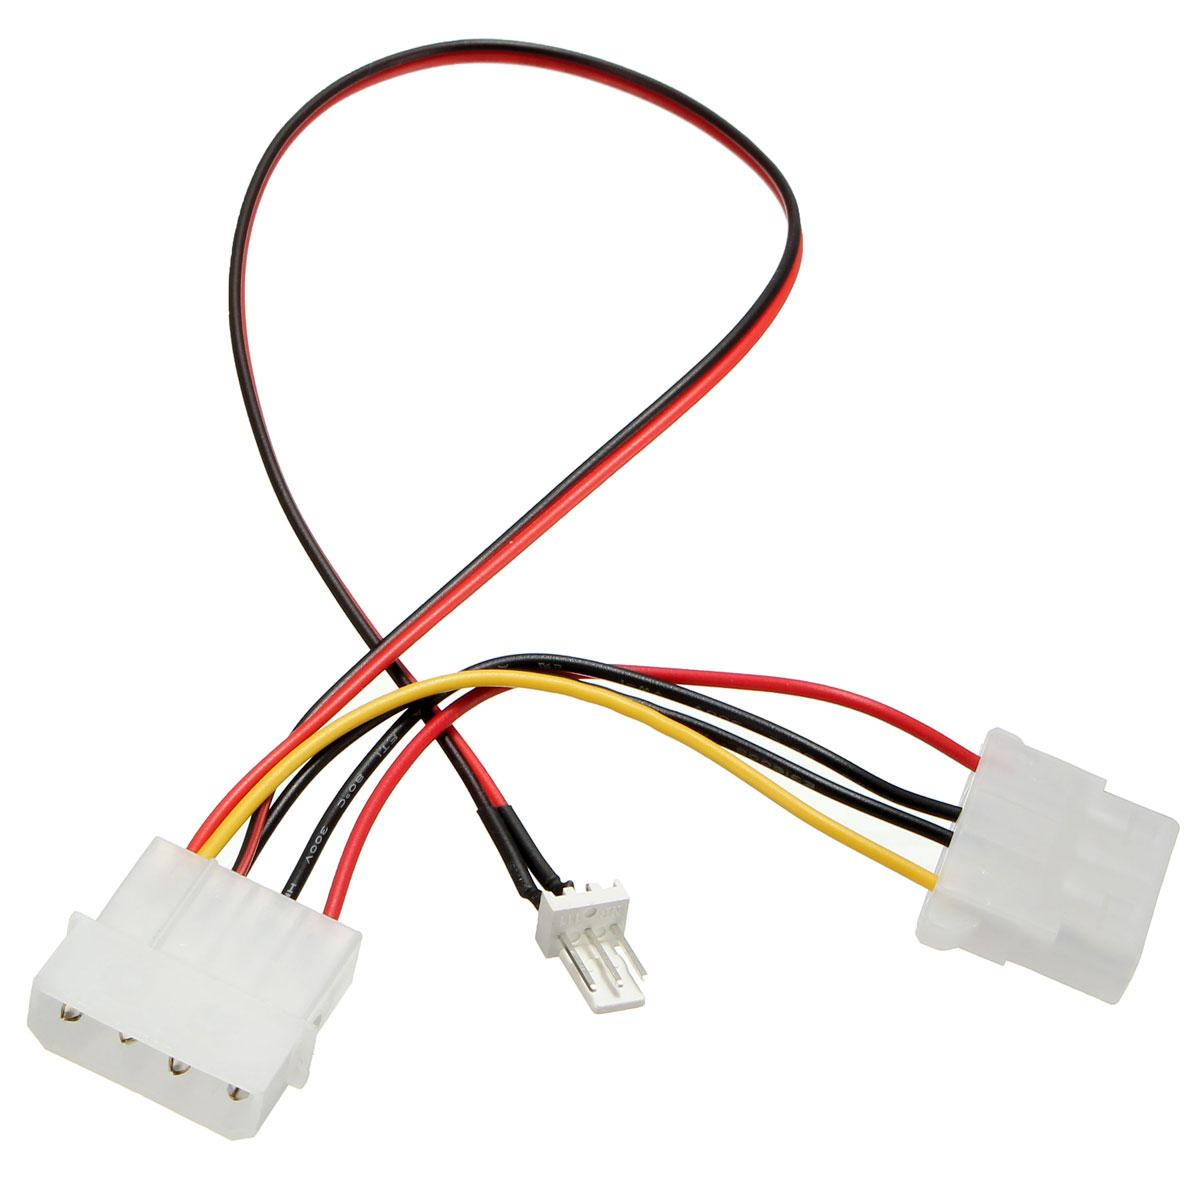 hight resolution of wholesale new arrival 3 pins to 4 pins ide power connector cable extension cord adapter for pc cpu fan computer cables connectors cables for less pc cables